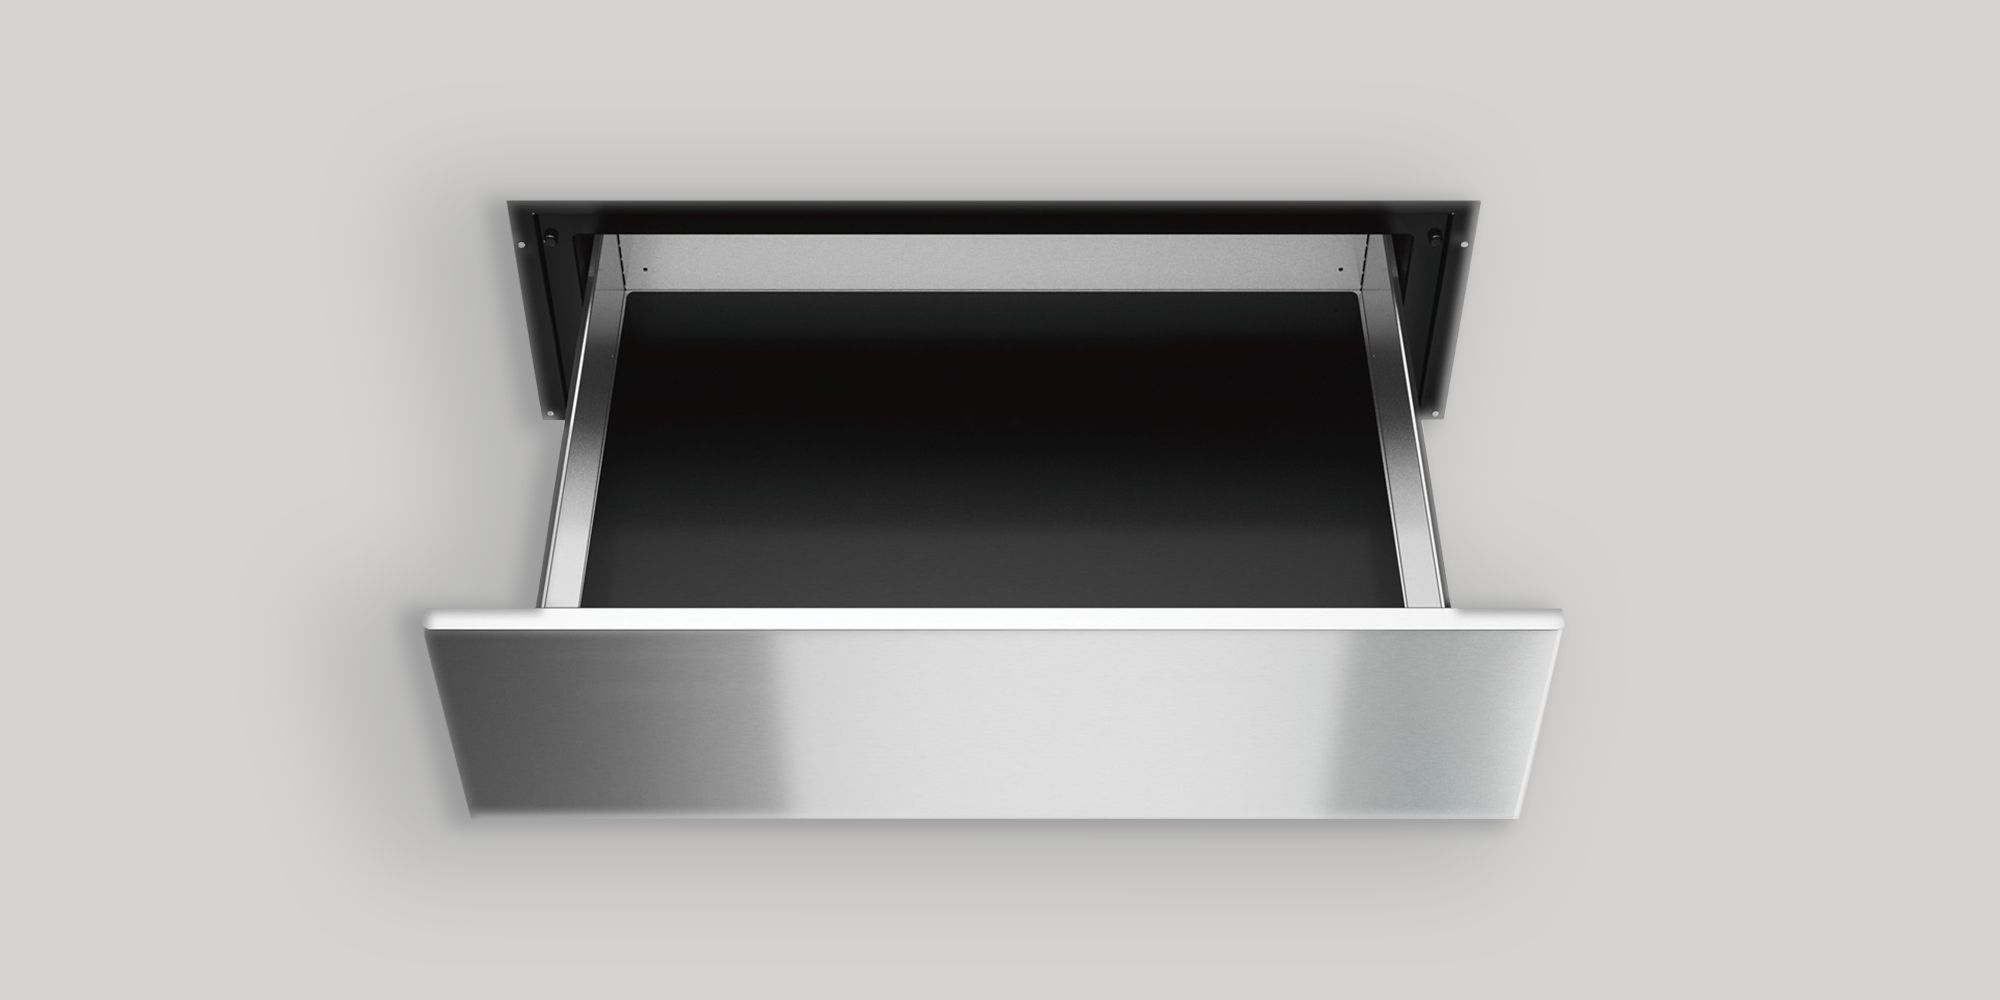 cabinet drawer built designs microwave warming pin in kitchen oven